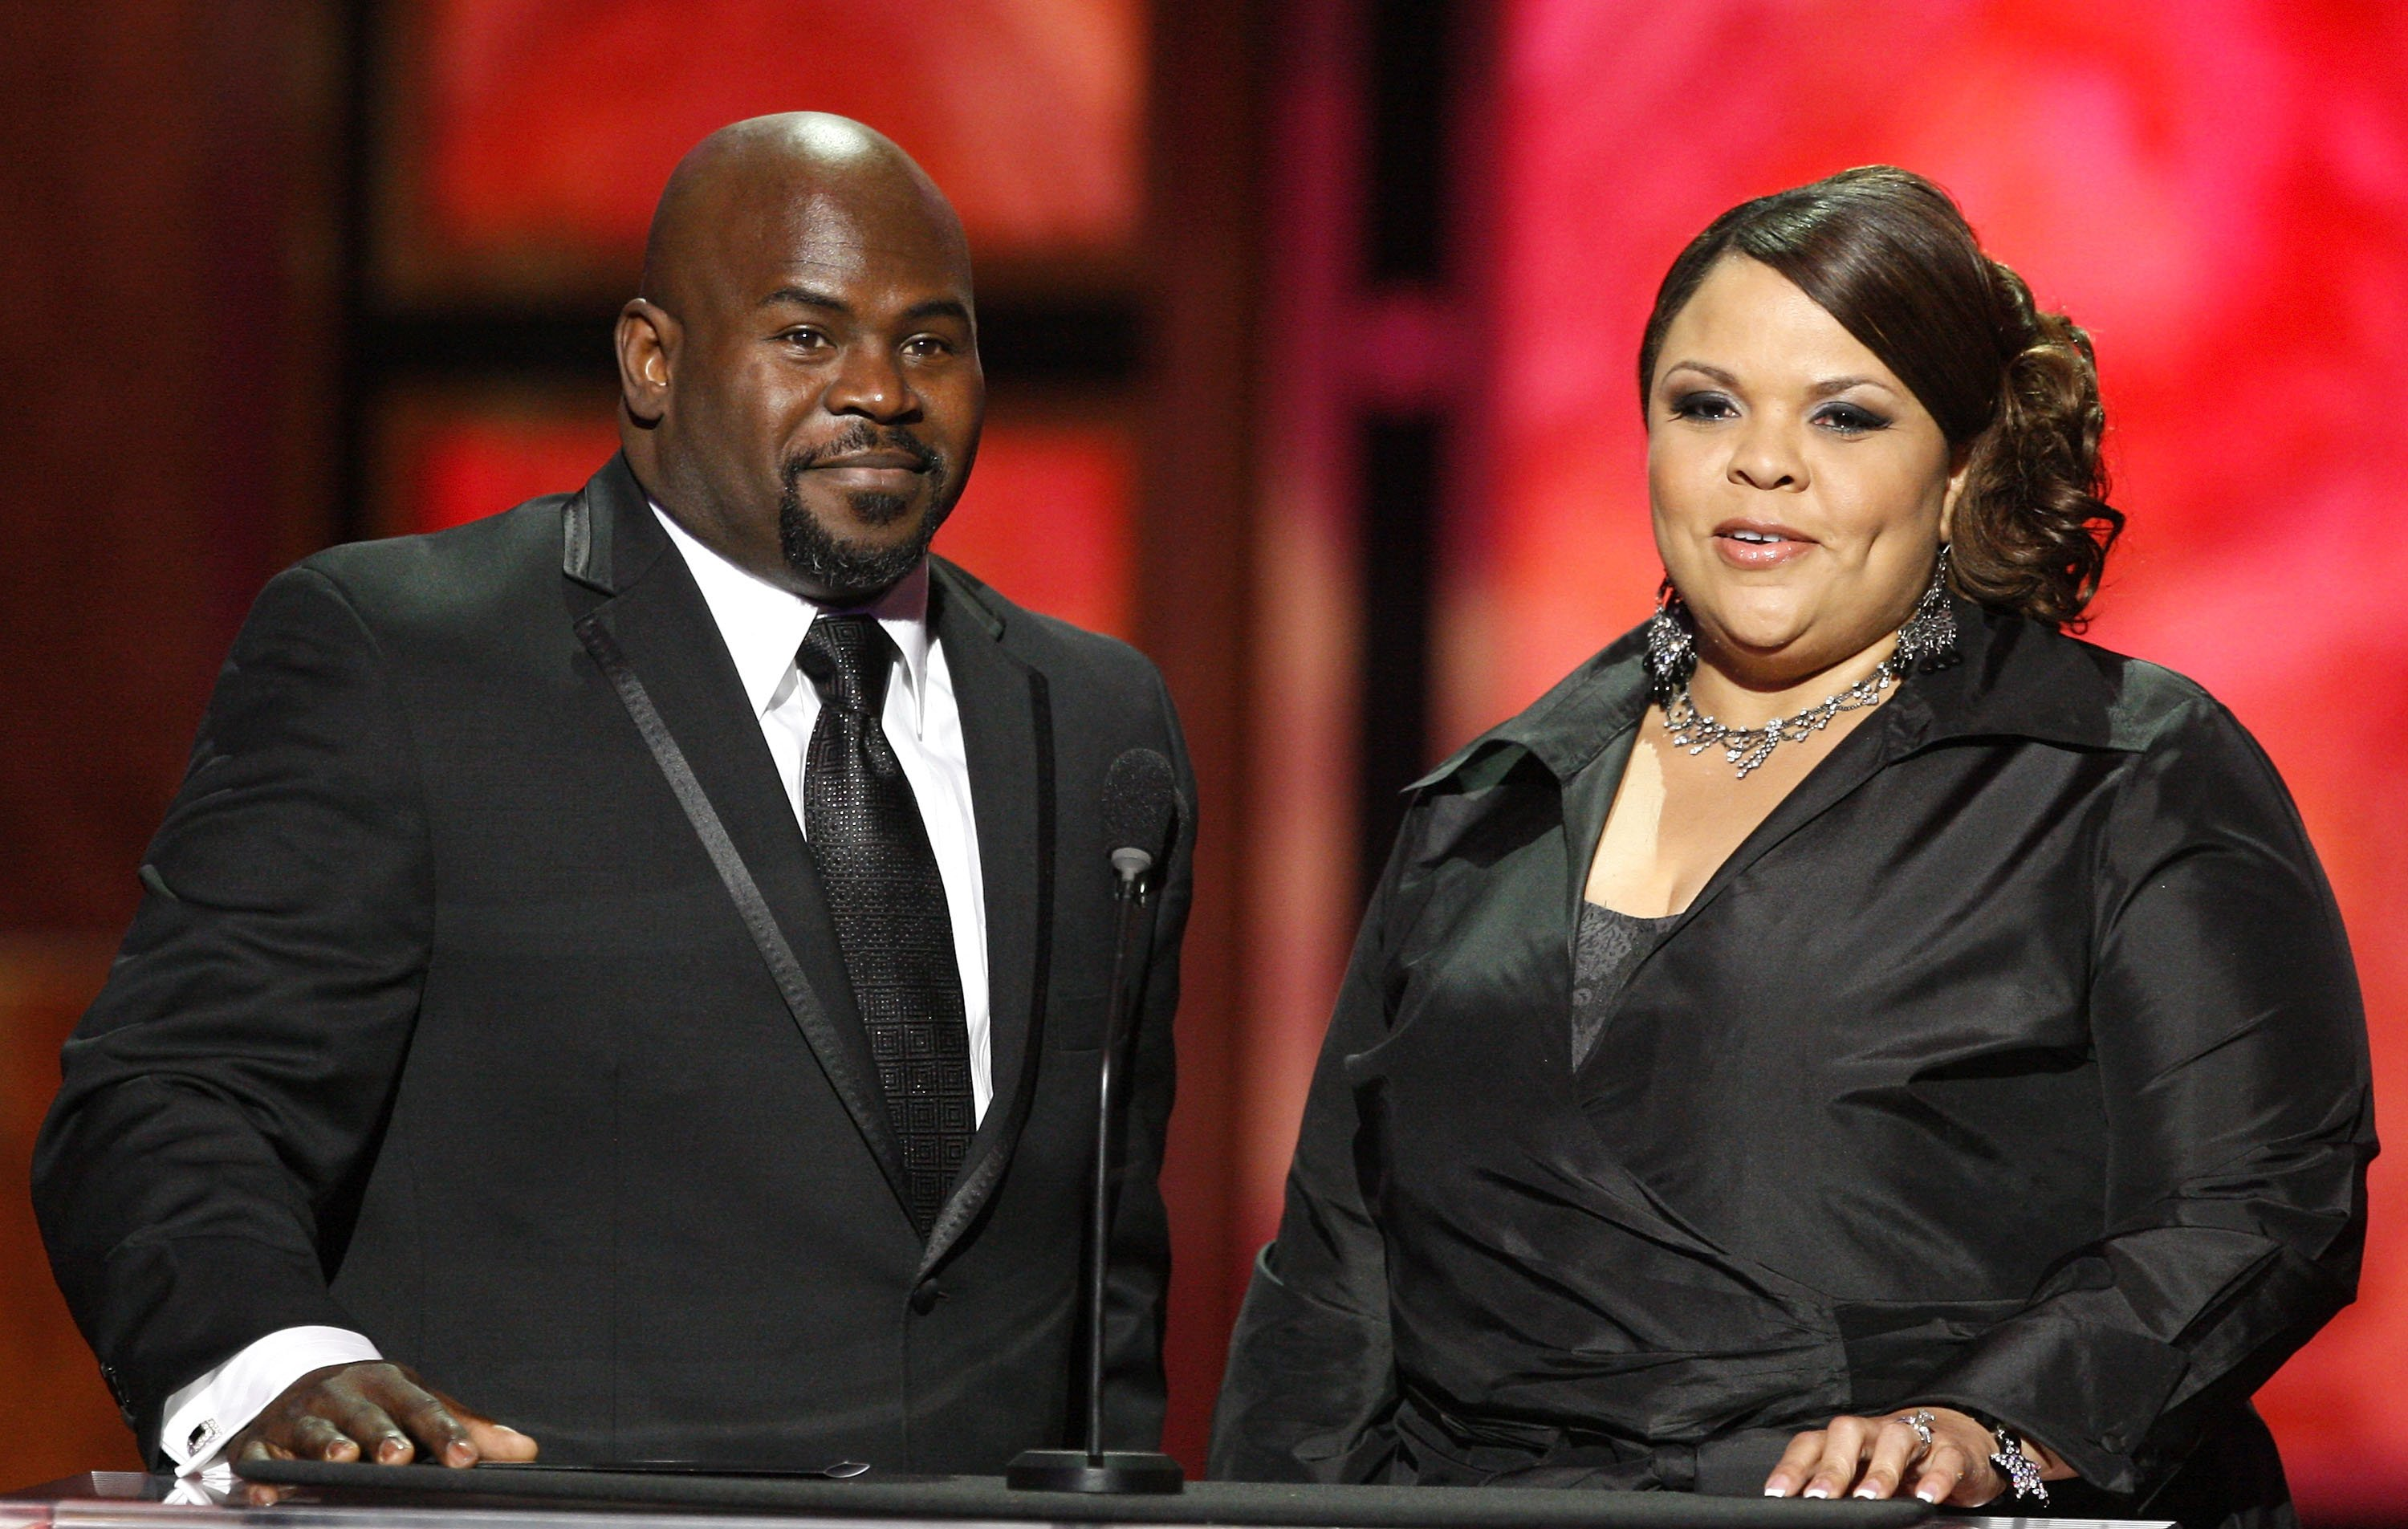 David Mann and Tamela Mann speak during the 40th NAACP Image Awards held at the Shrine Auditorium on February 12, 2009 | Photo: GettyImages